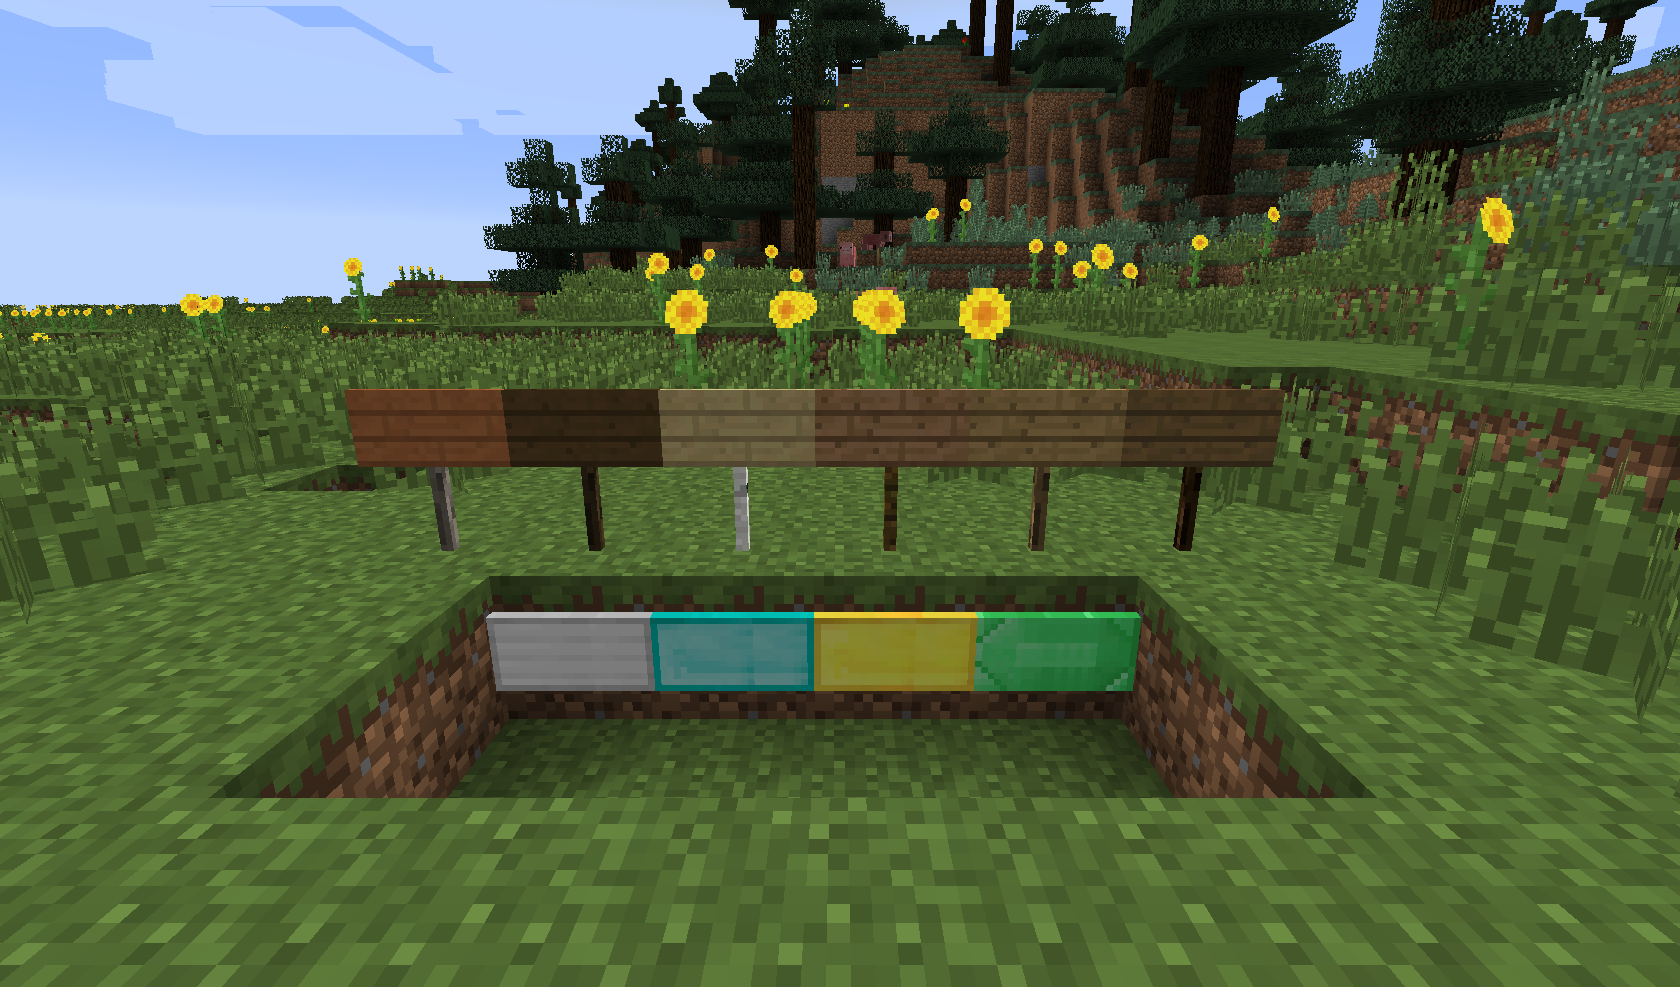 1 7 10] MoarSigns Mod Download | Minecraft Forum